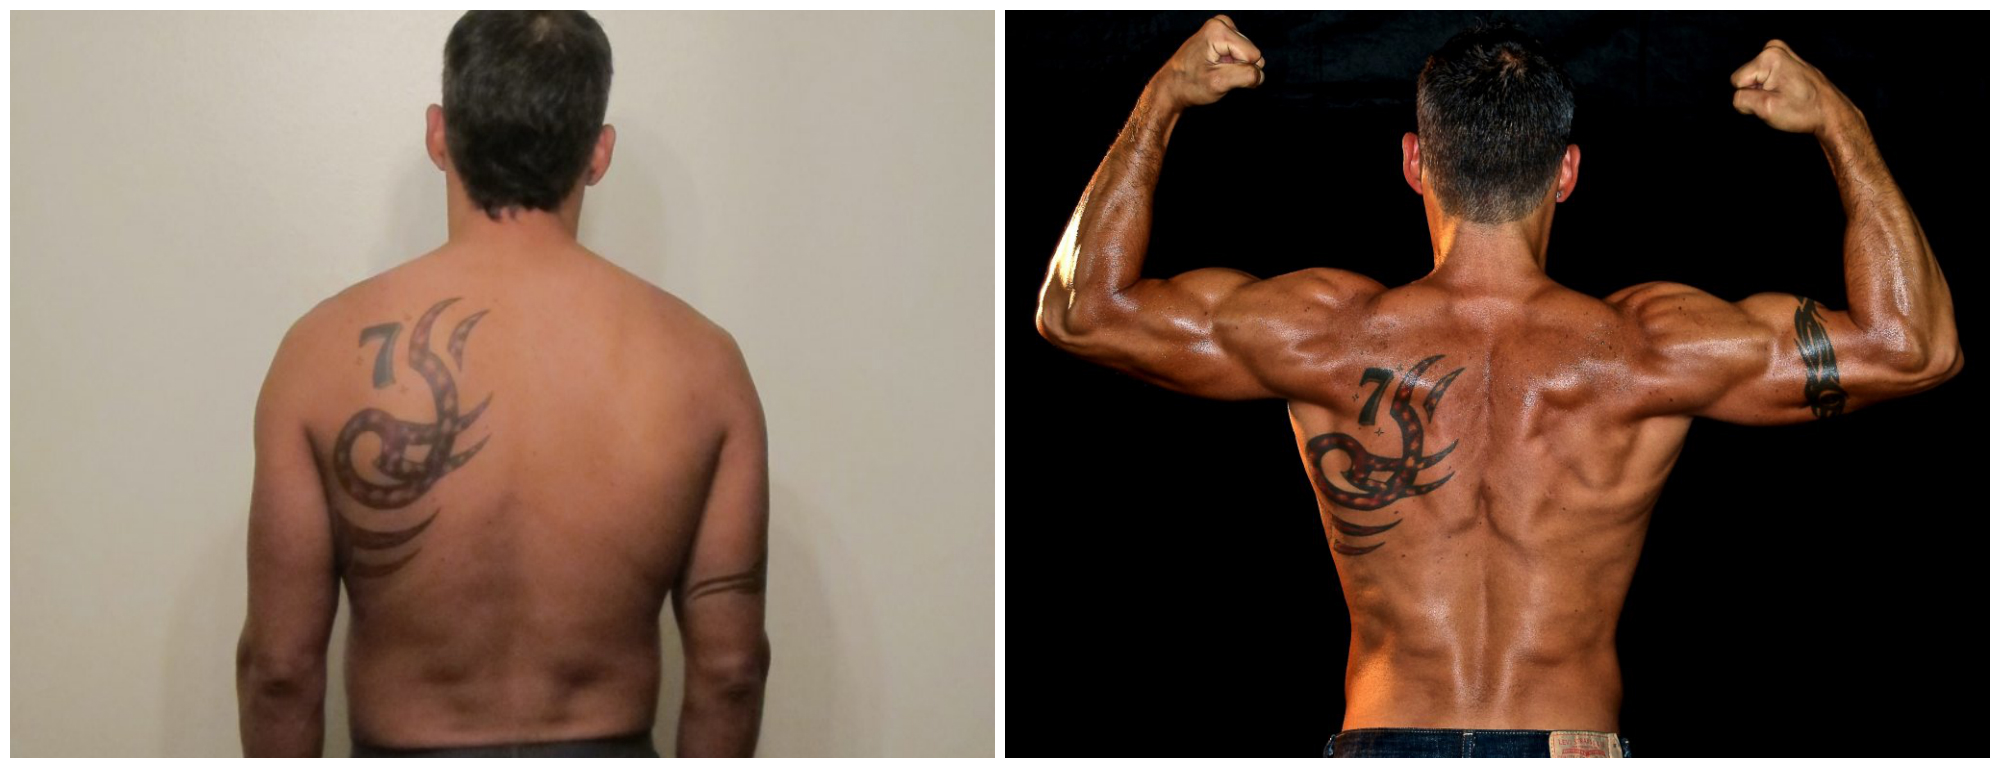 Daniel Carbonel - 7th Place - Back Before/After Photos